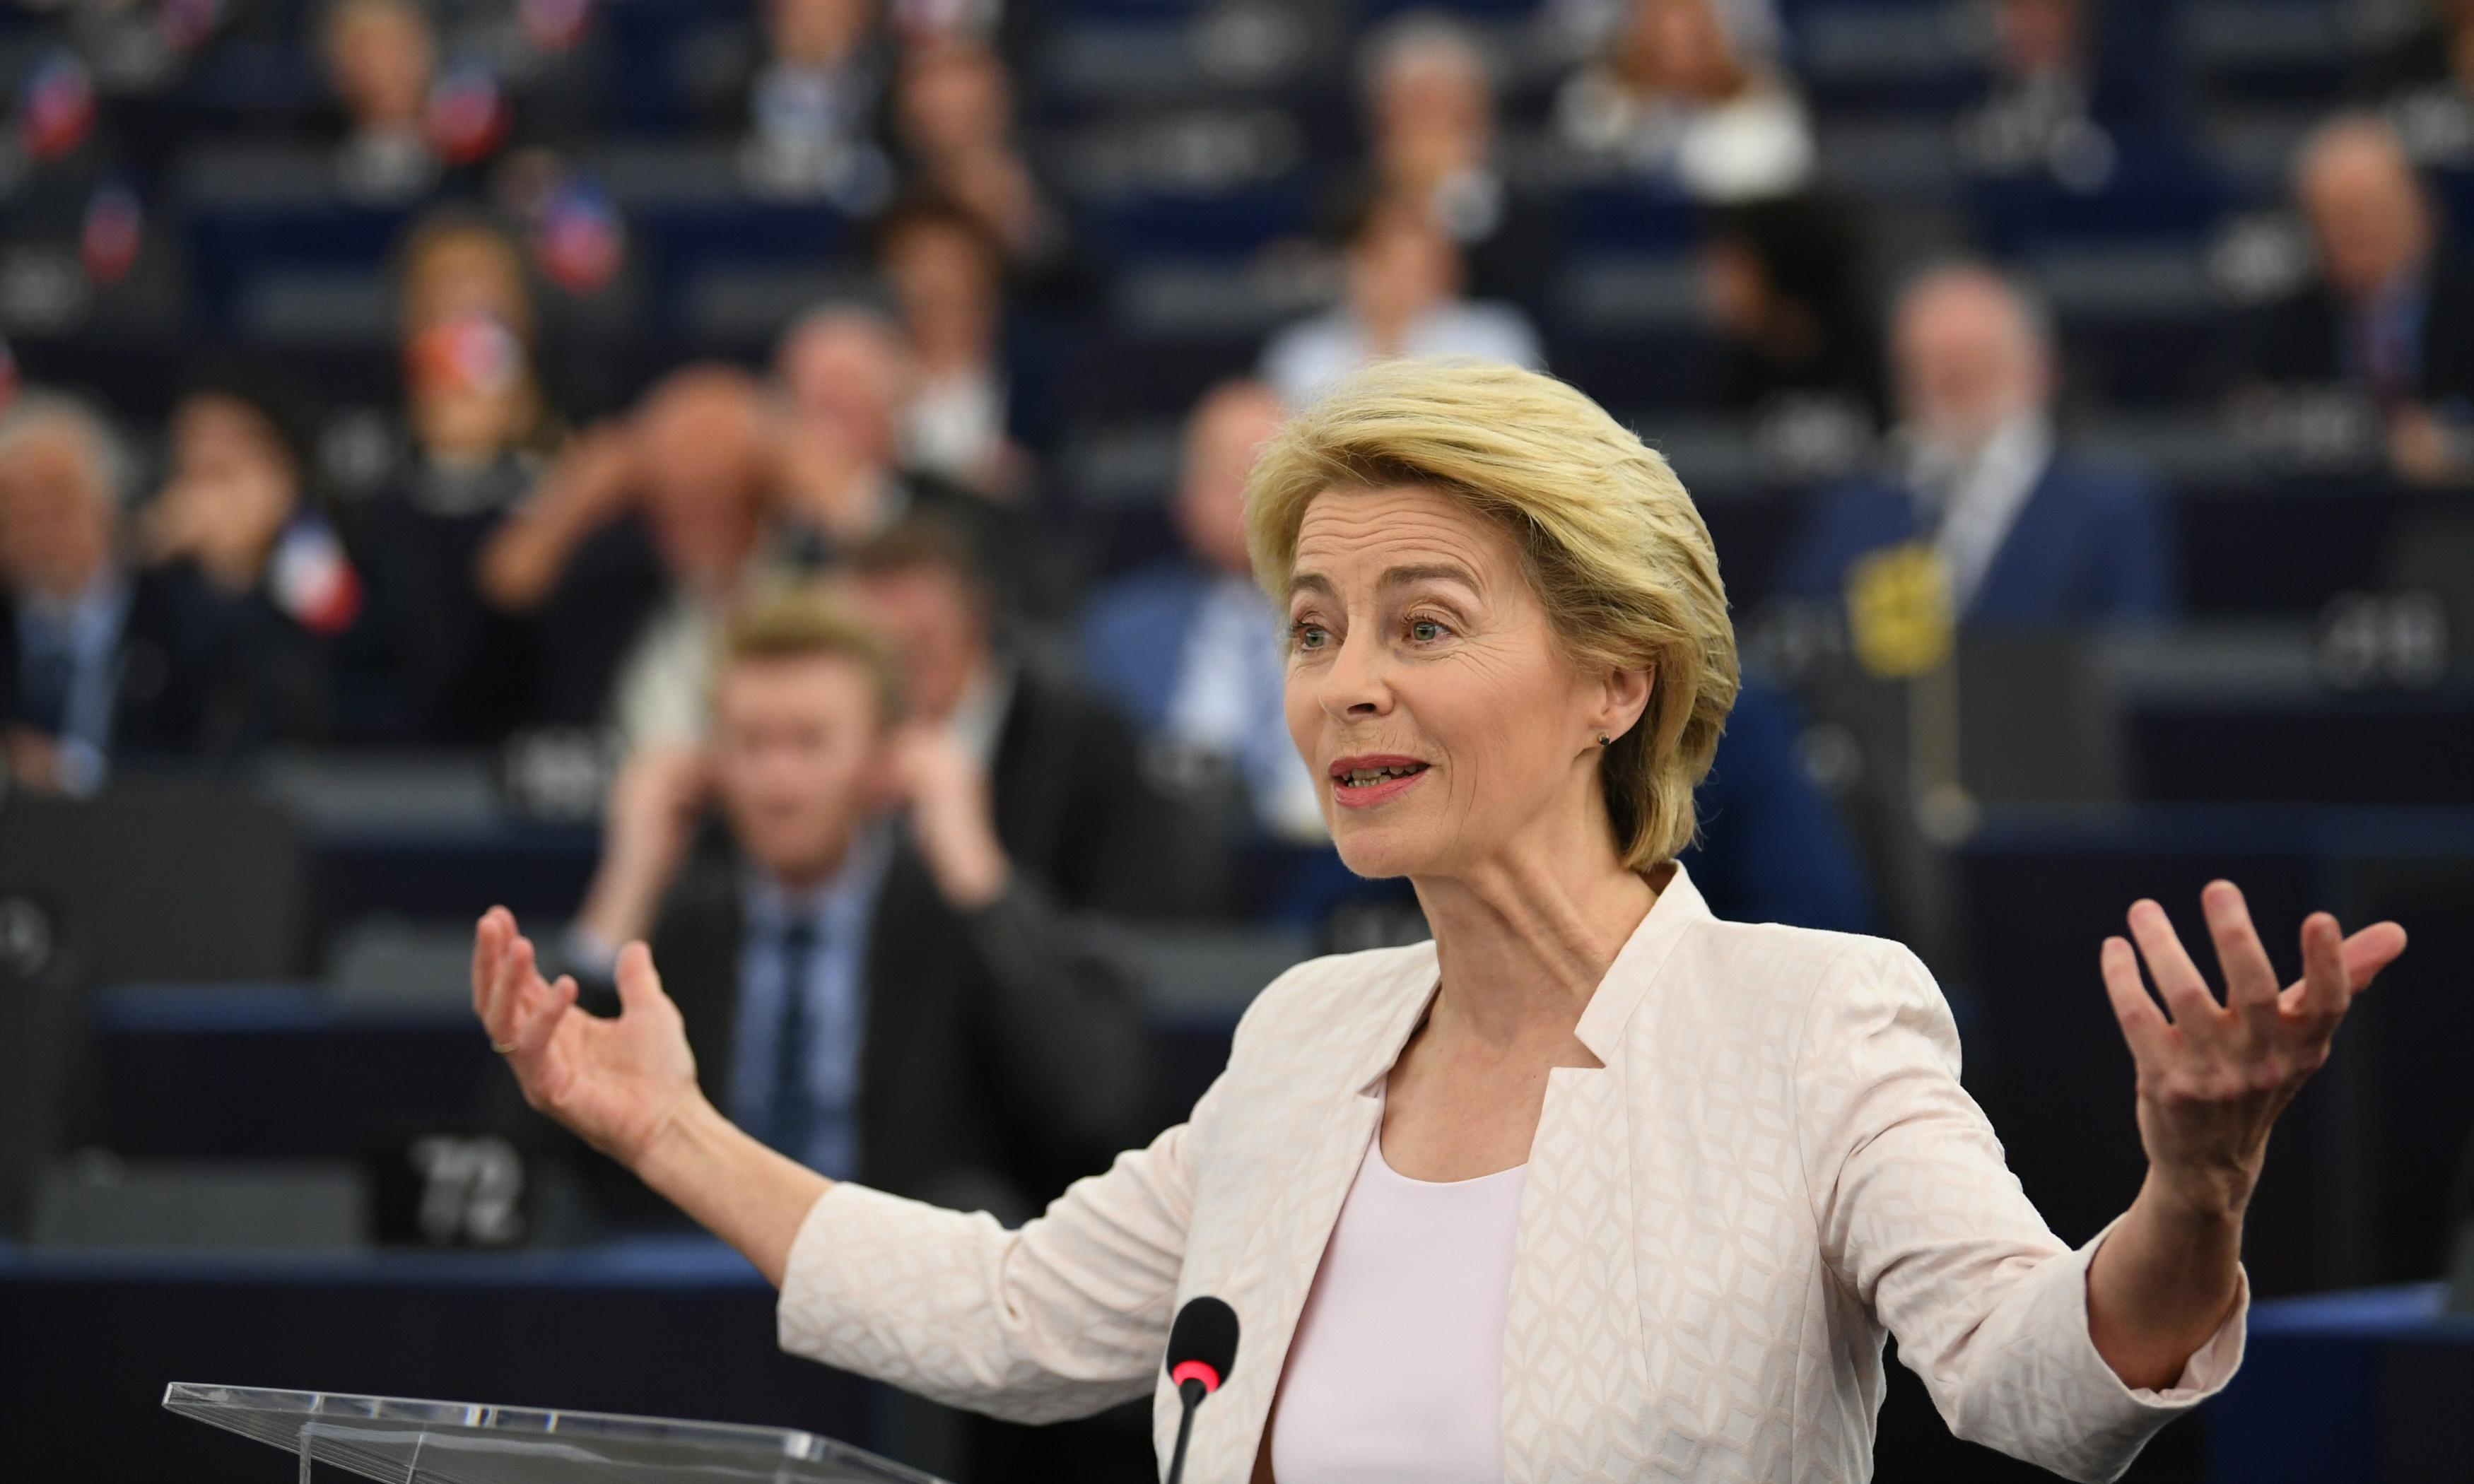 Candidate for top EU job touts gender equality ahead of vote